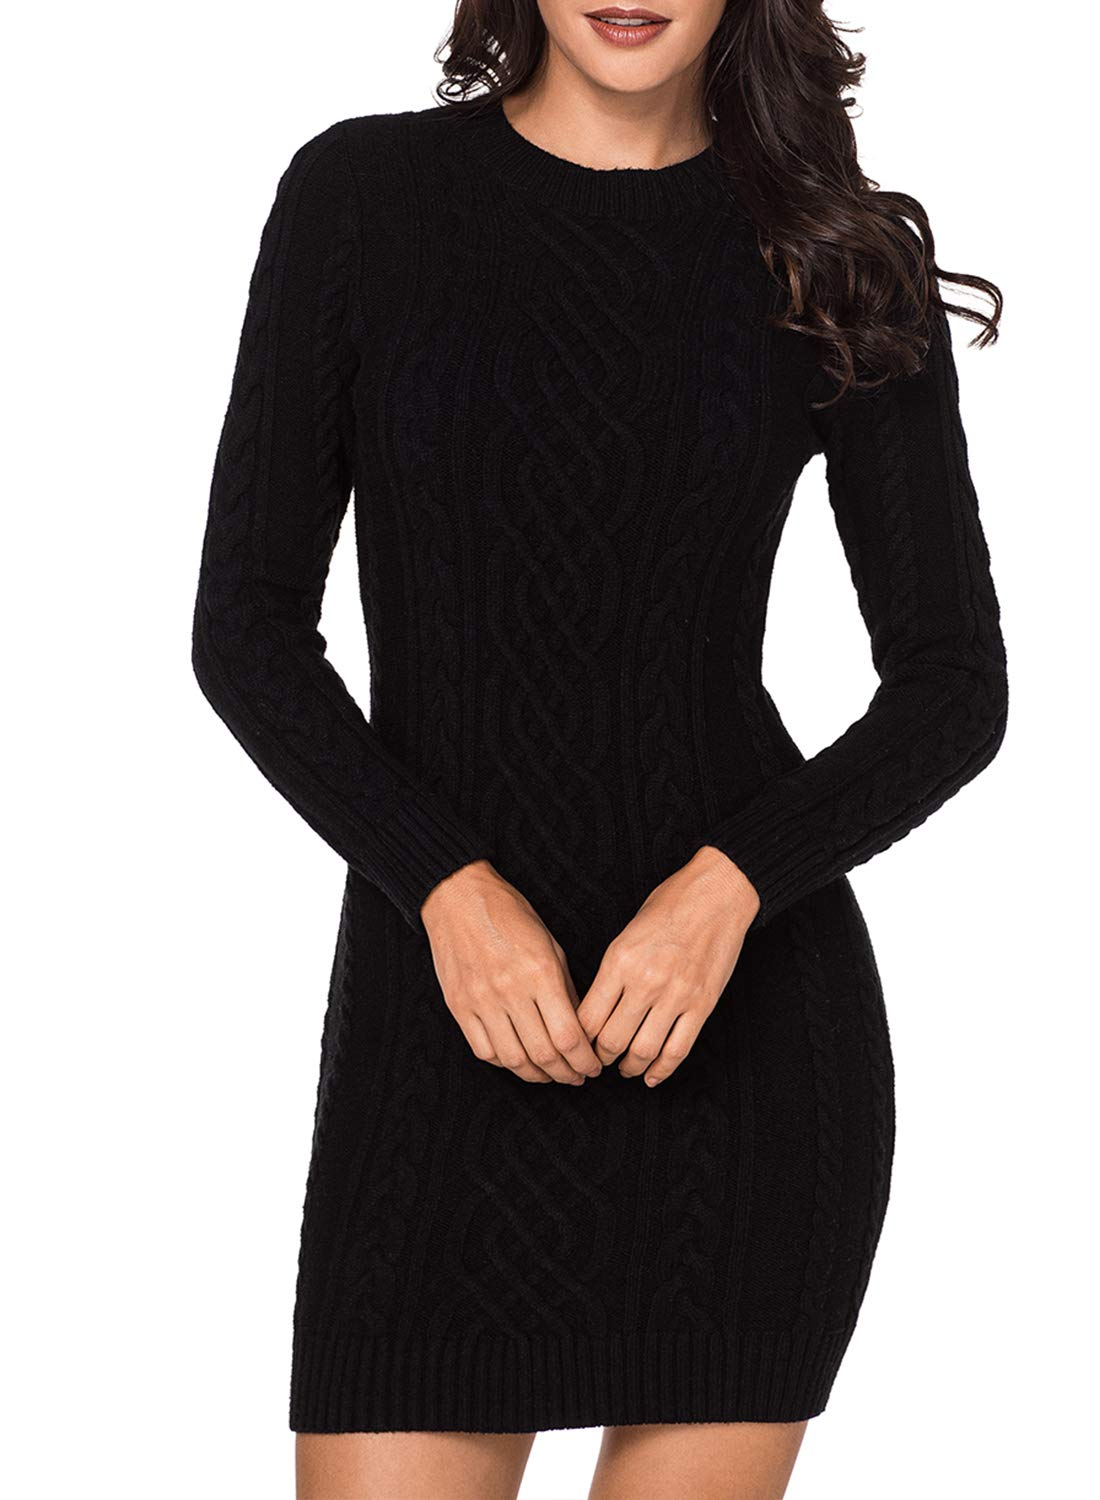 Azokoe 2018 Knit Sweater Dress Women 2018 Winter Casual Slim Fit Chunky Scoop Neck Pullover Cable Knit Sweater Mini Bodycon Dress Black Large